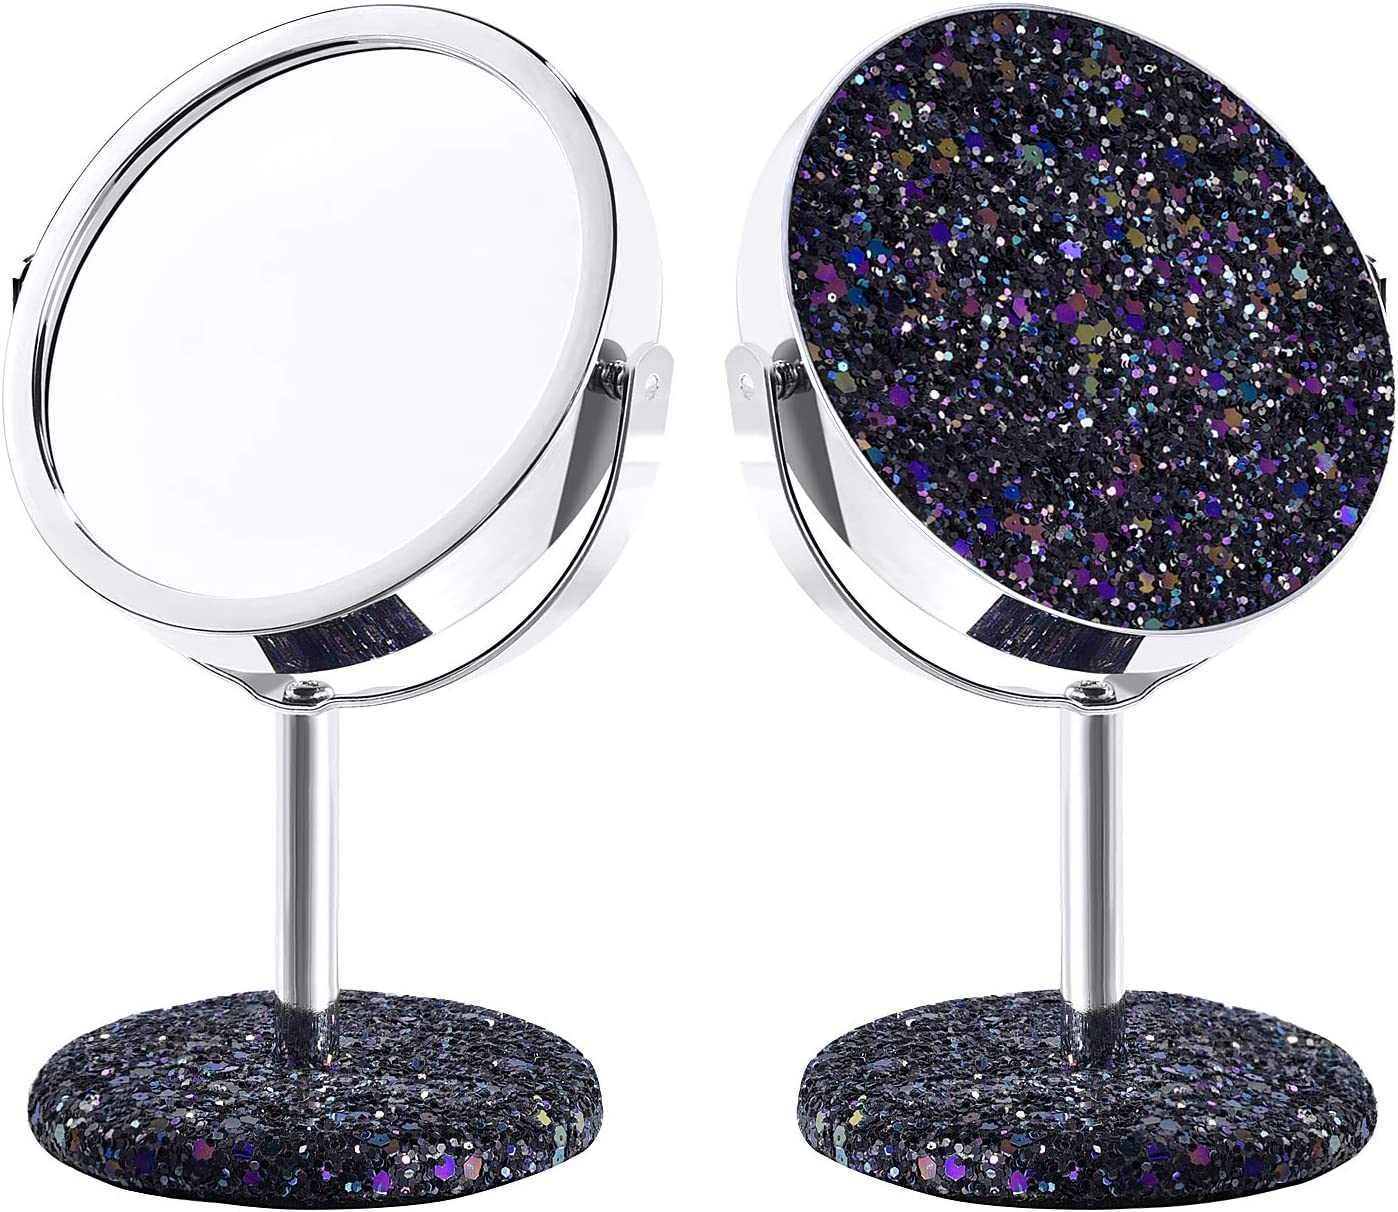 derui creation 3 5 inch clearance vanity mirror for girls glitter sparkly makeup mirror gifts for kids princess makeup party birthday